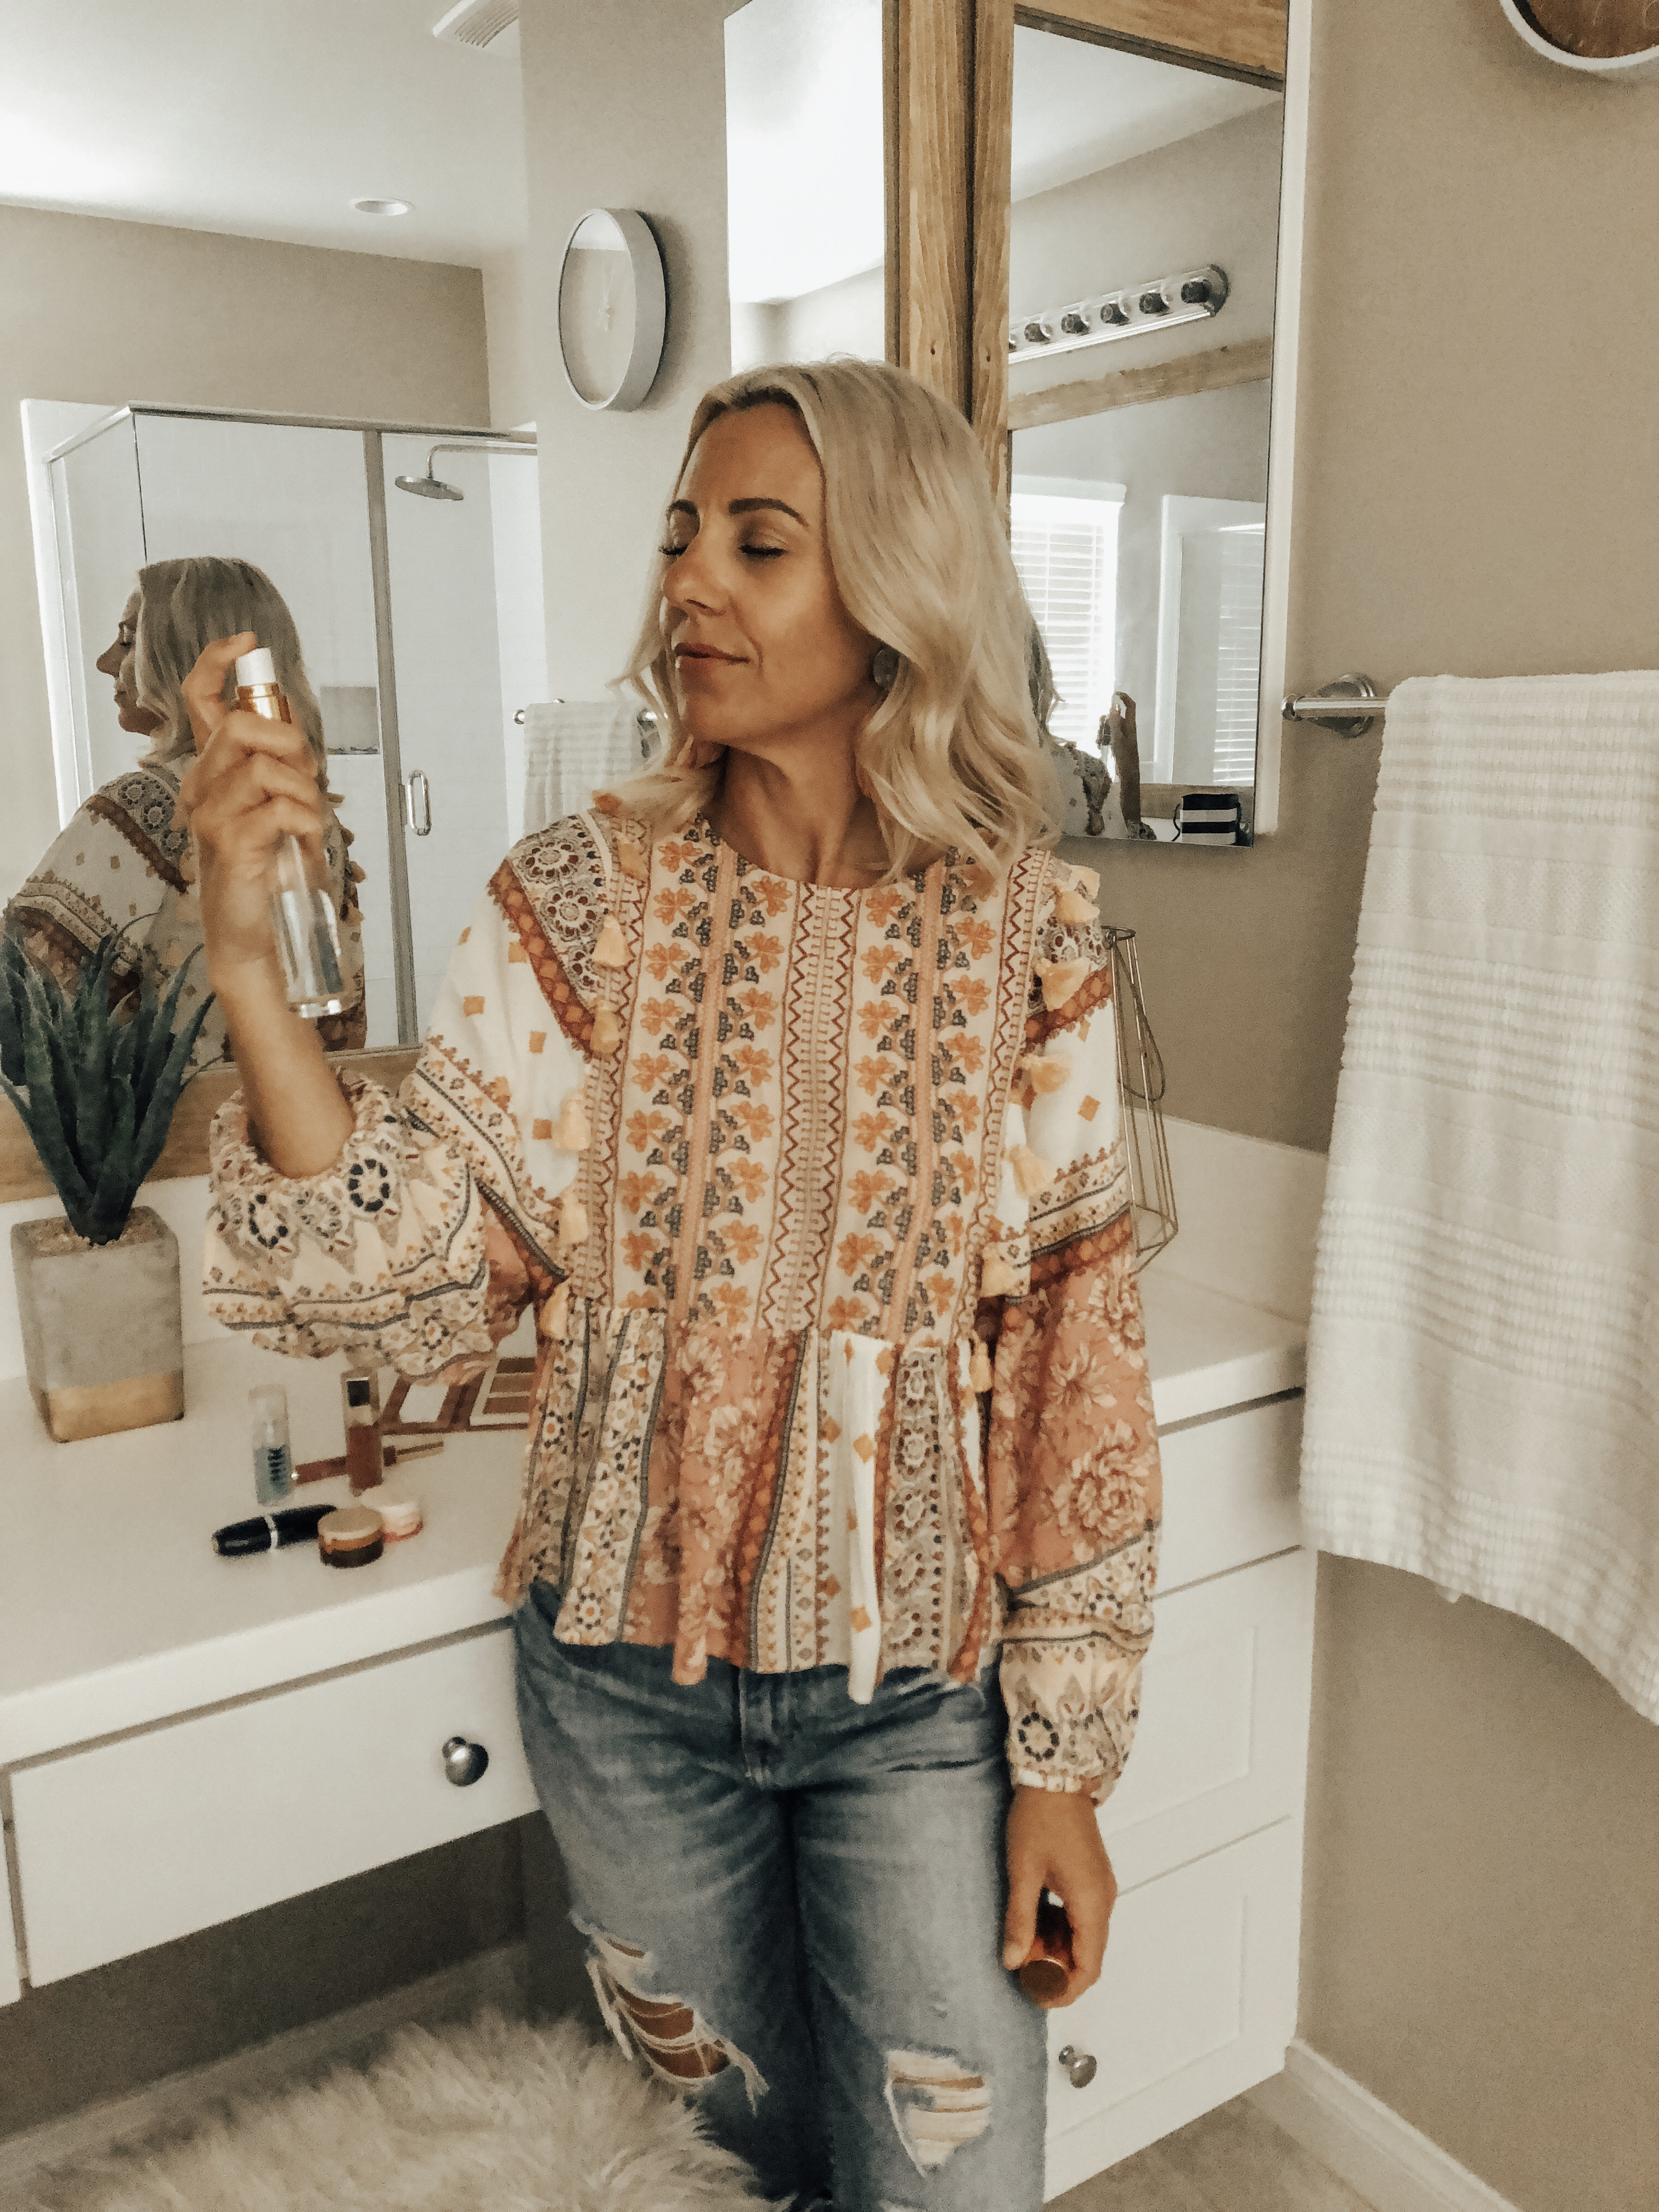 SPRING MAKEUP REFRESH WITH SEPHORA INSIDE JCPENNEY- Jaclyn De Leon Style + Have you updated your makeup for Spring and Summer? There is all new and exclusive Sephora makeup products with all the pink, gold and shimmer you need.